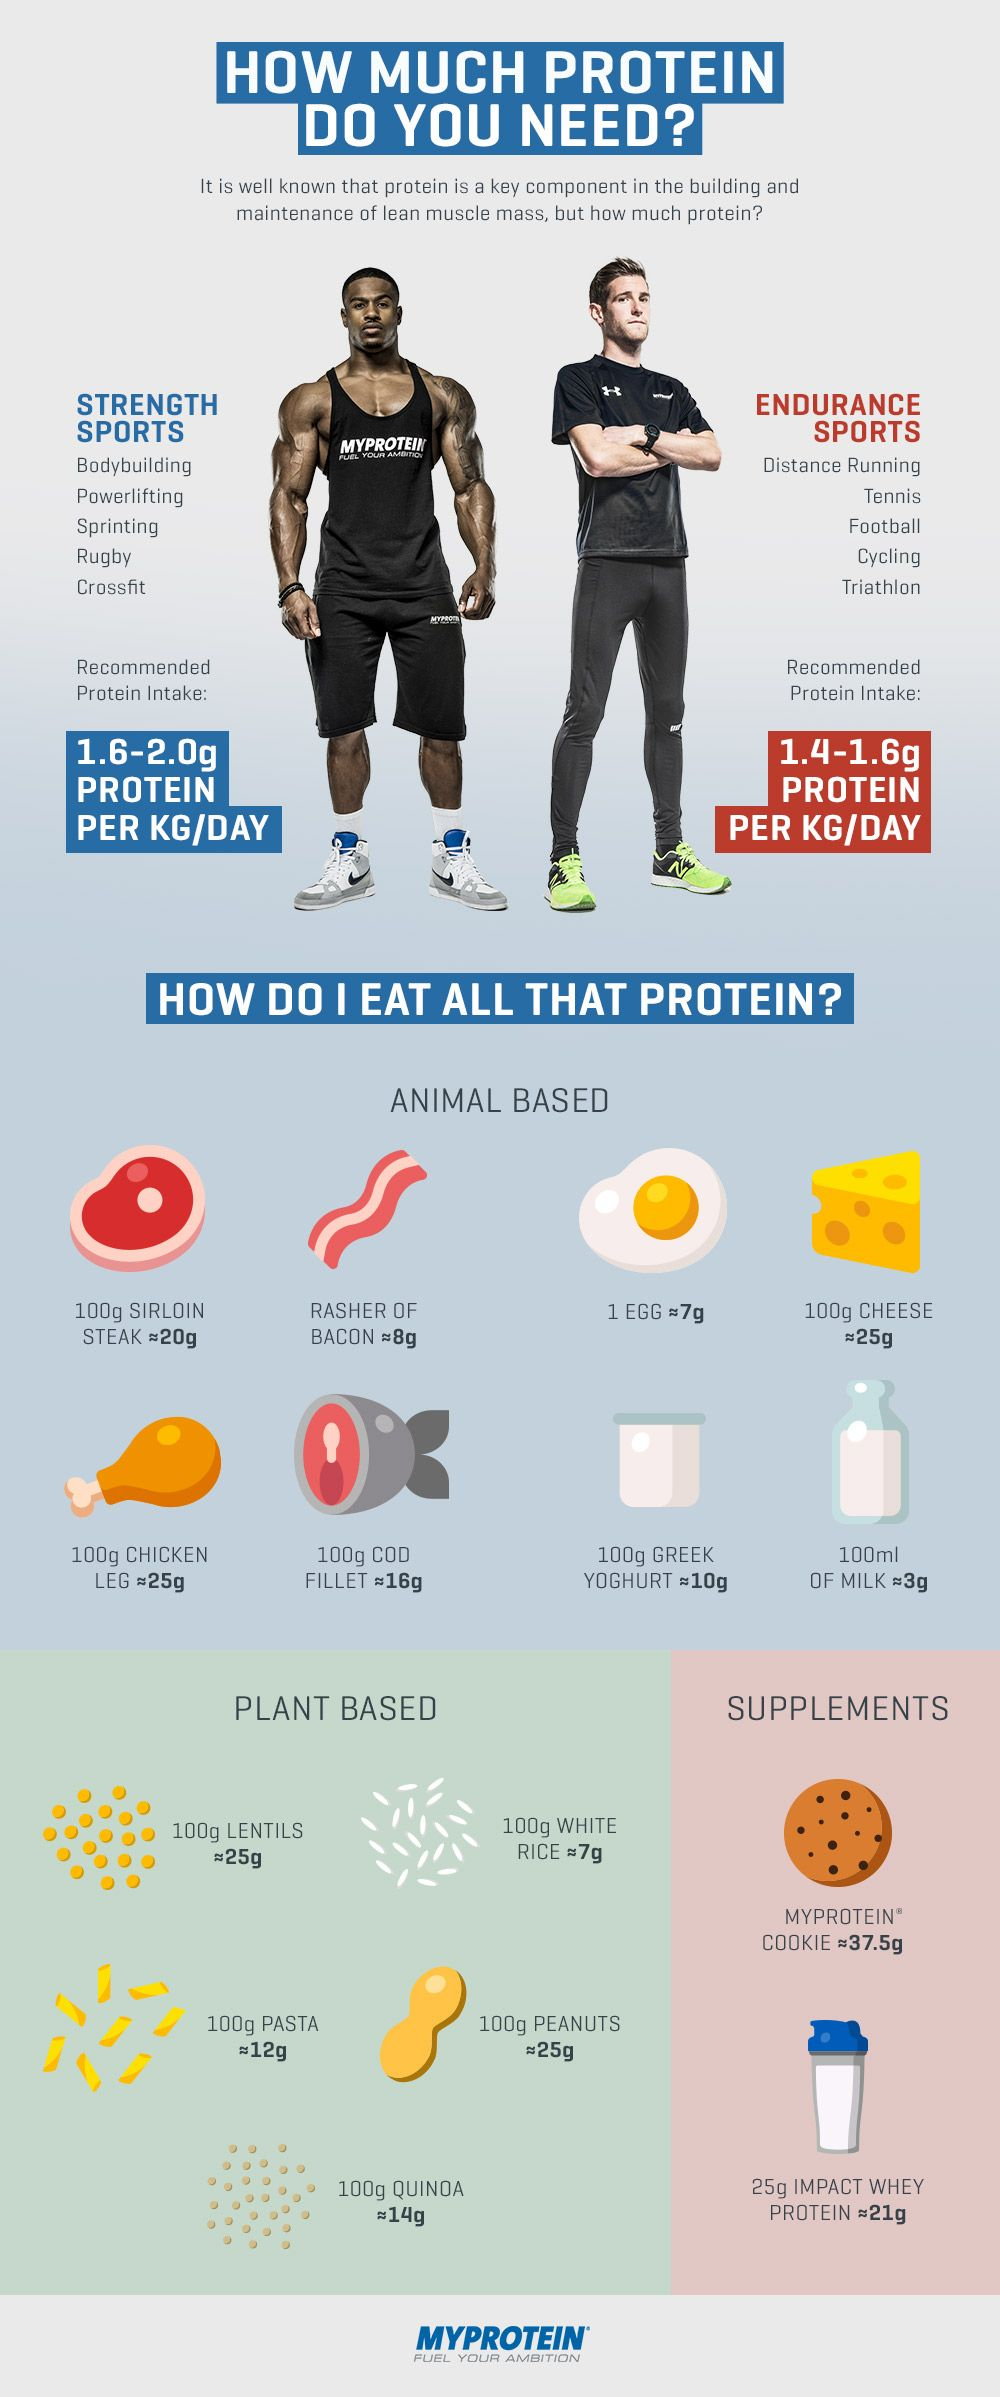 How much protein do I need? Myprotein